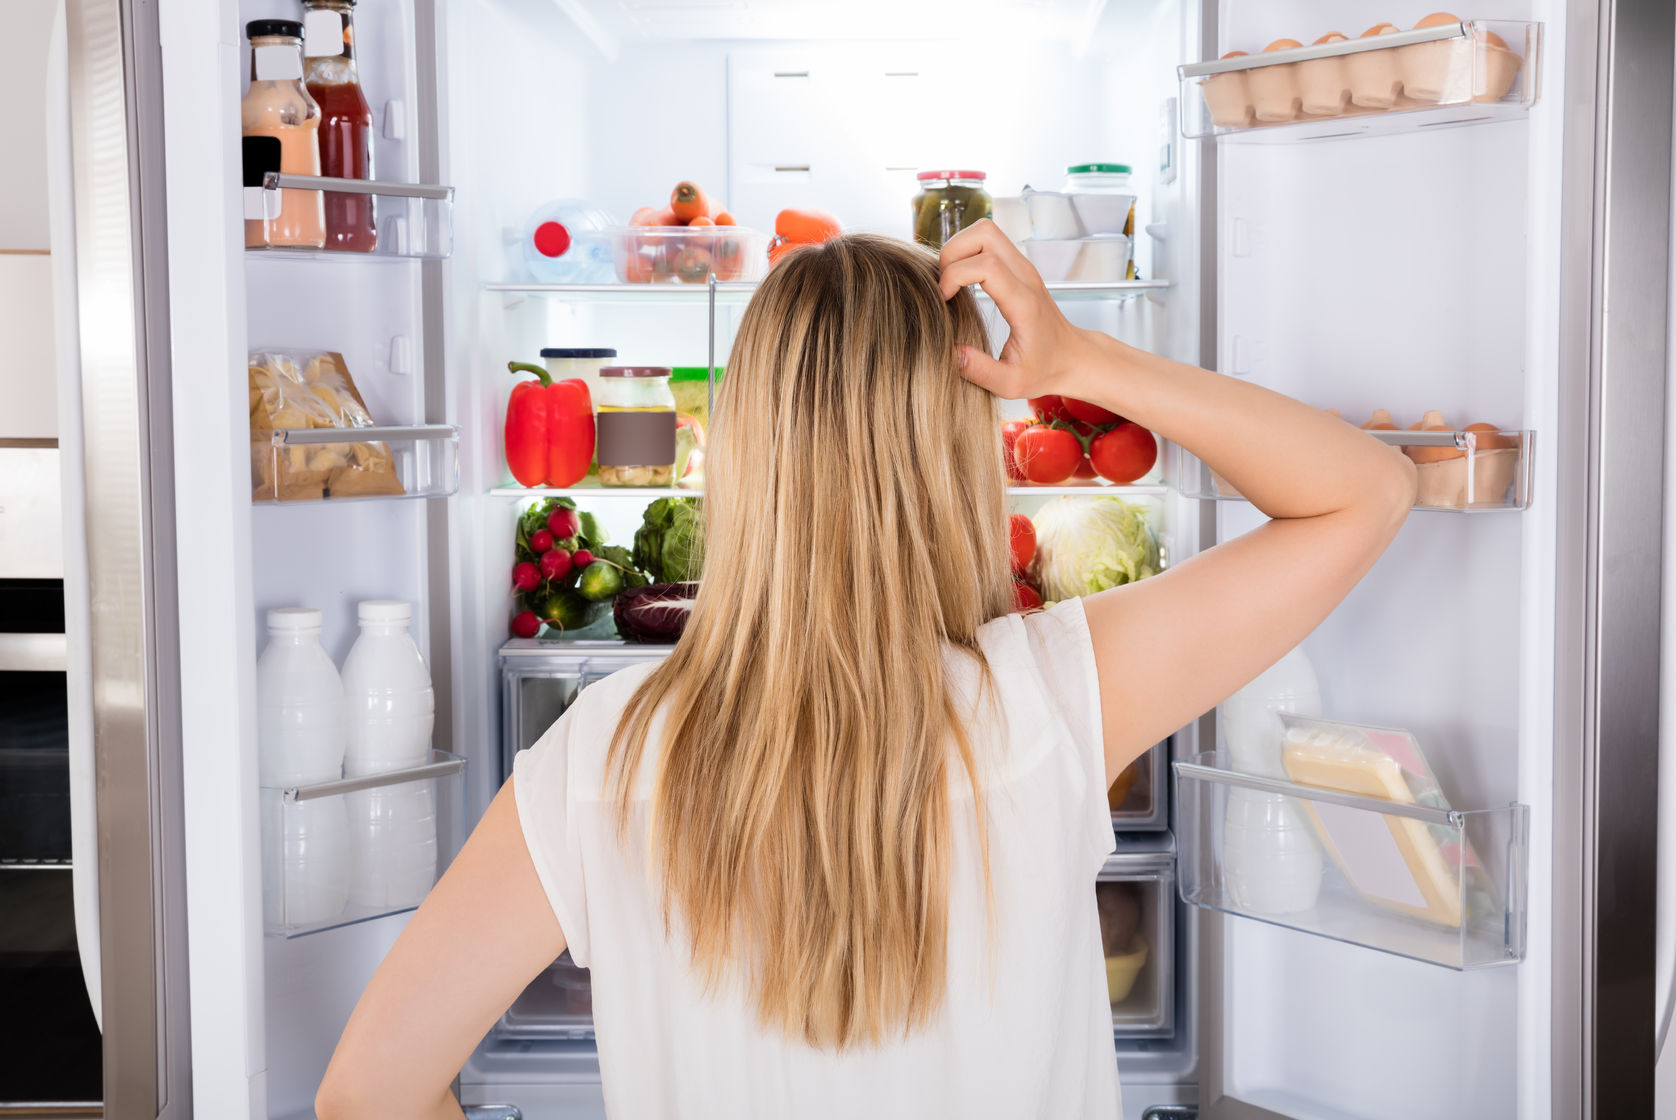 70309104 - rear view of young woman looking in fridge at kitchen